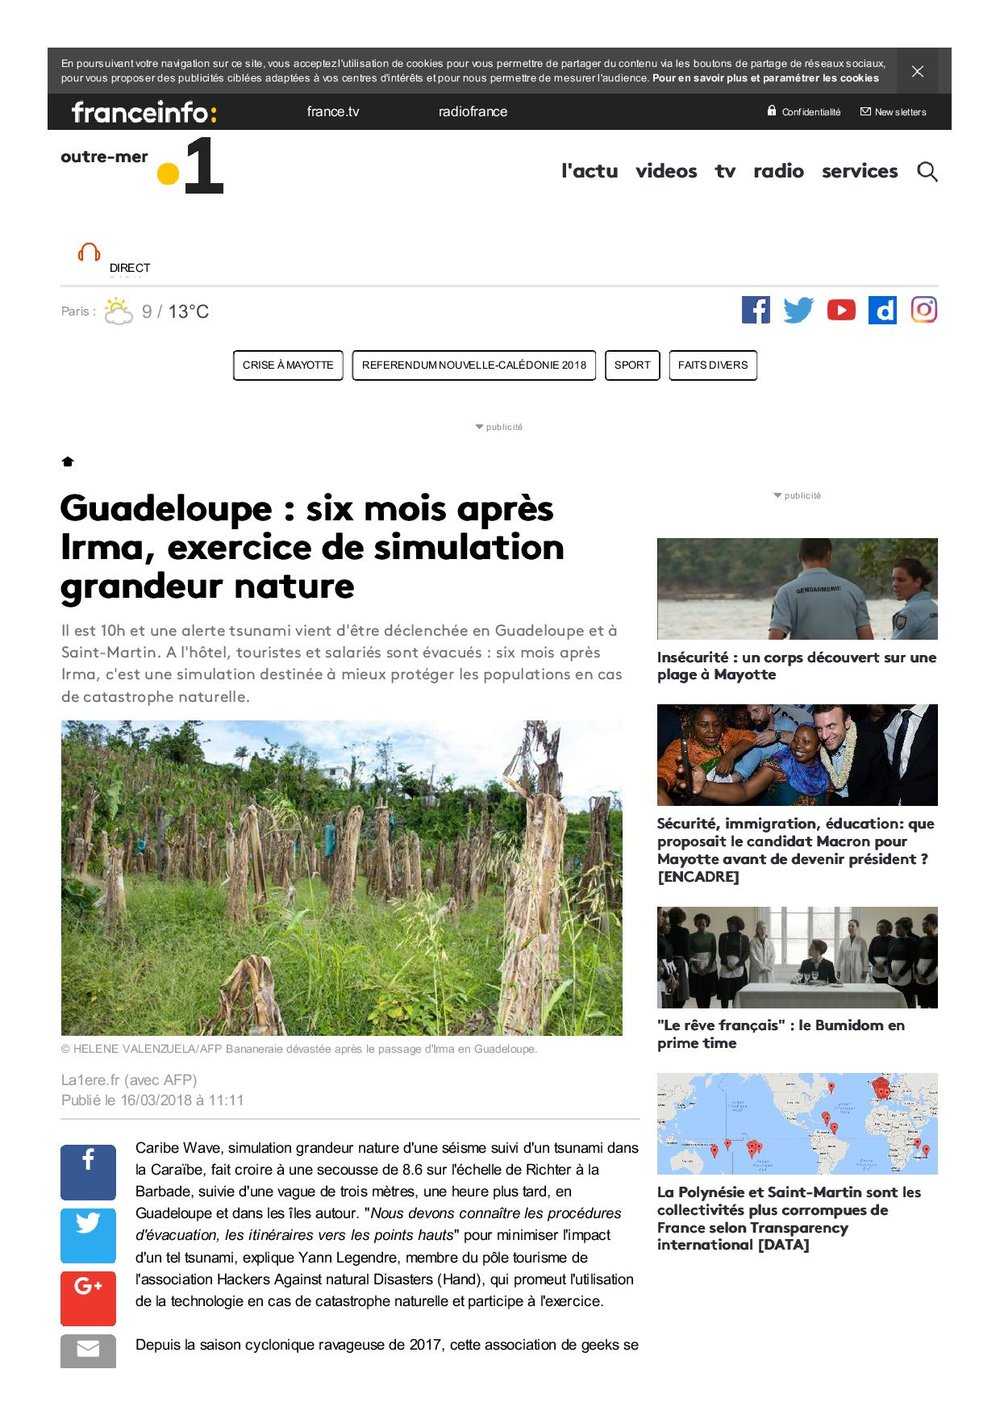 guadeloupe-six-mois-apres-irma-exercice-simulatio-page-001.jpg